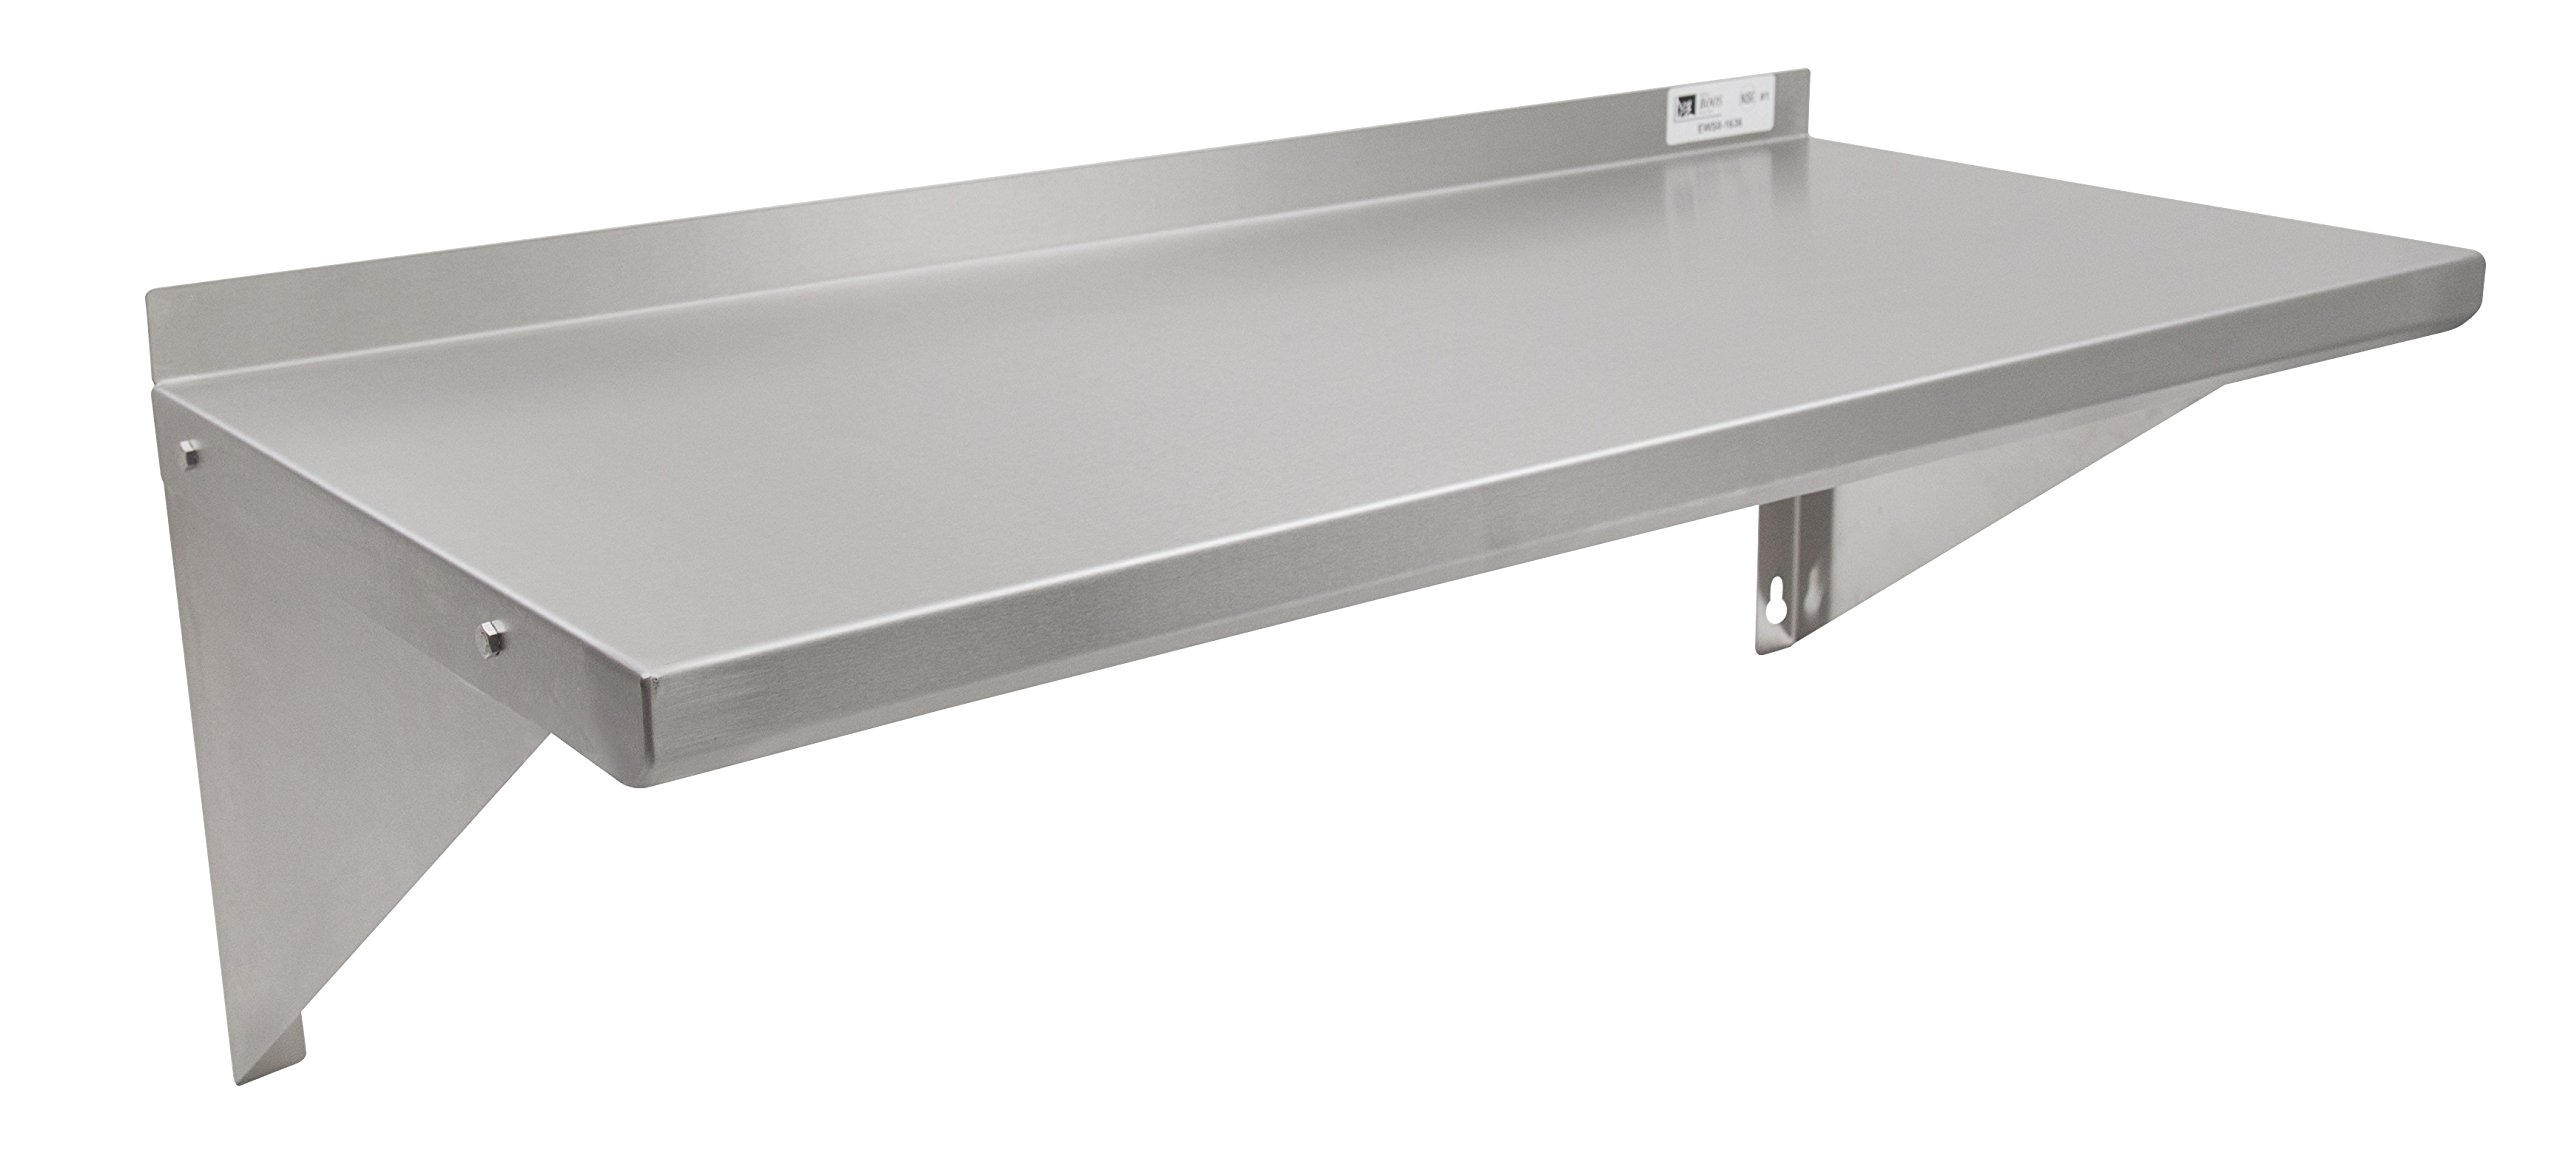 wall roselawnlutheran stainless with shelves size x shelf steel danver floating